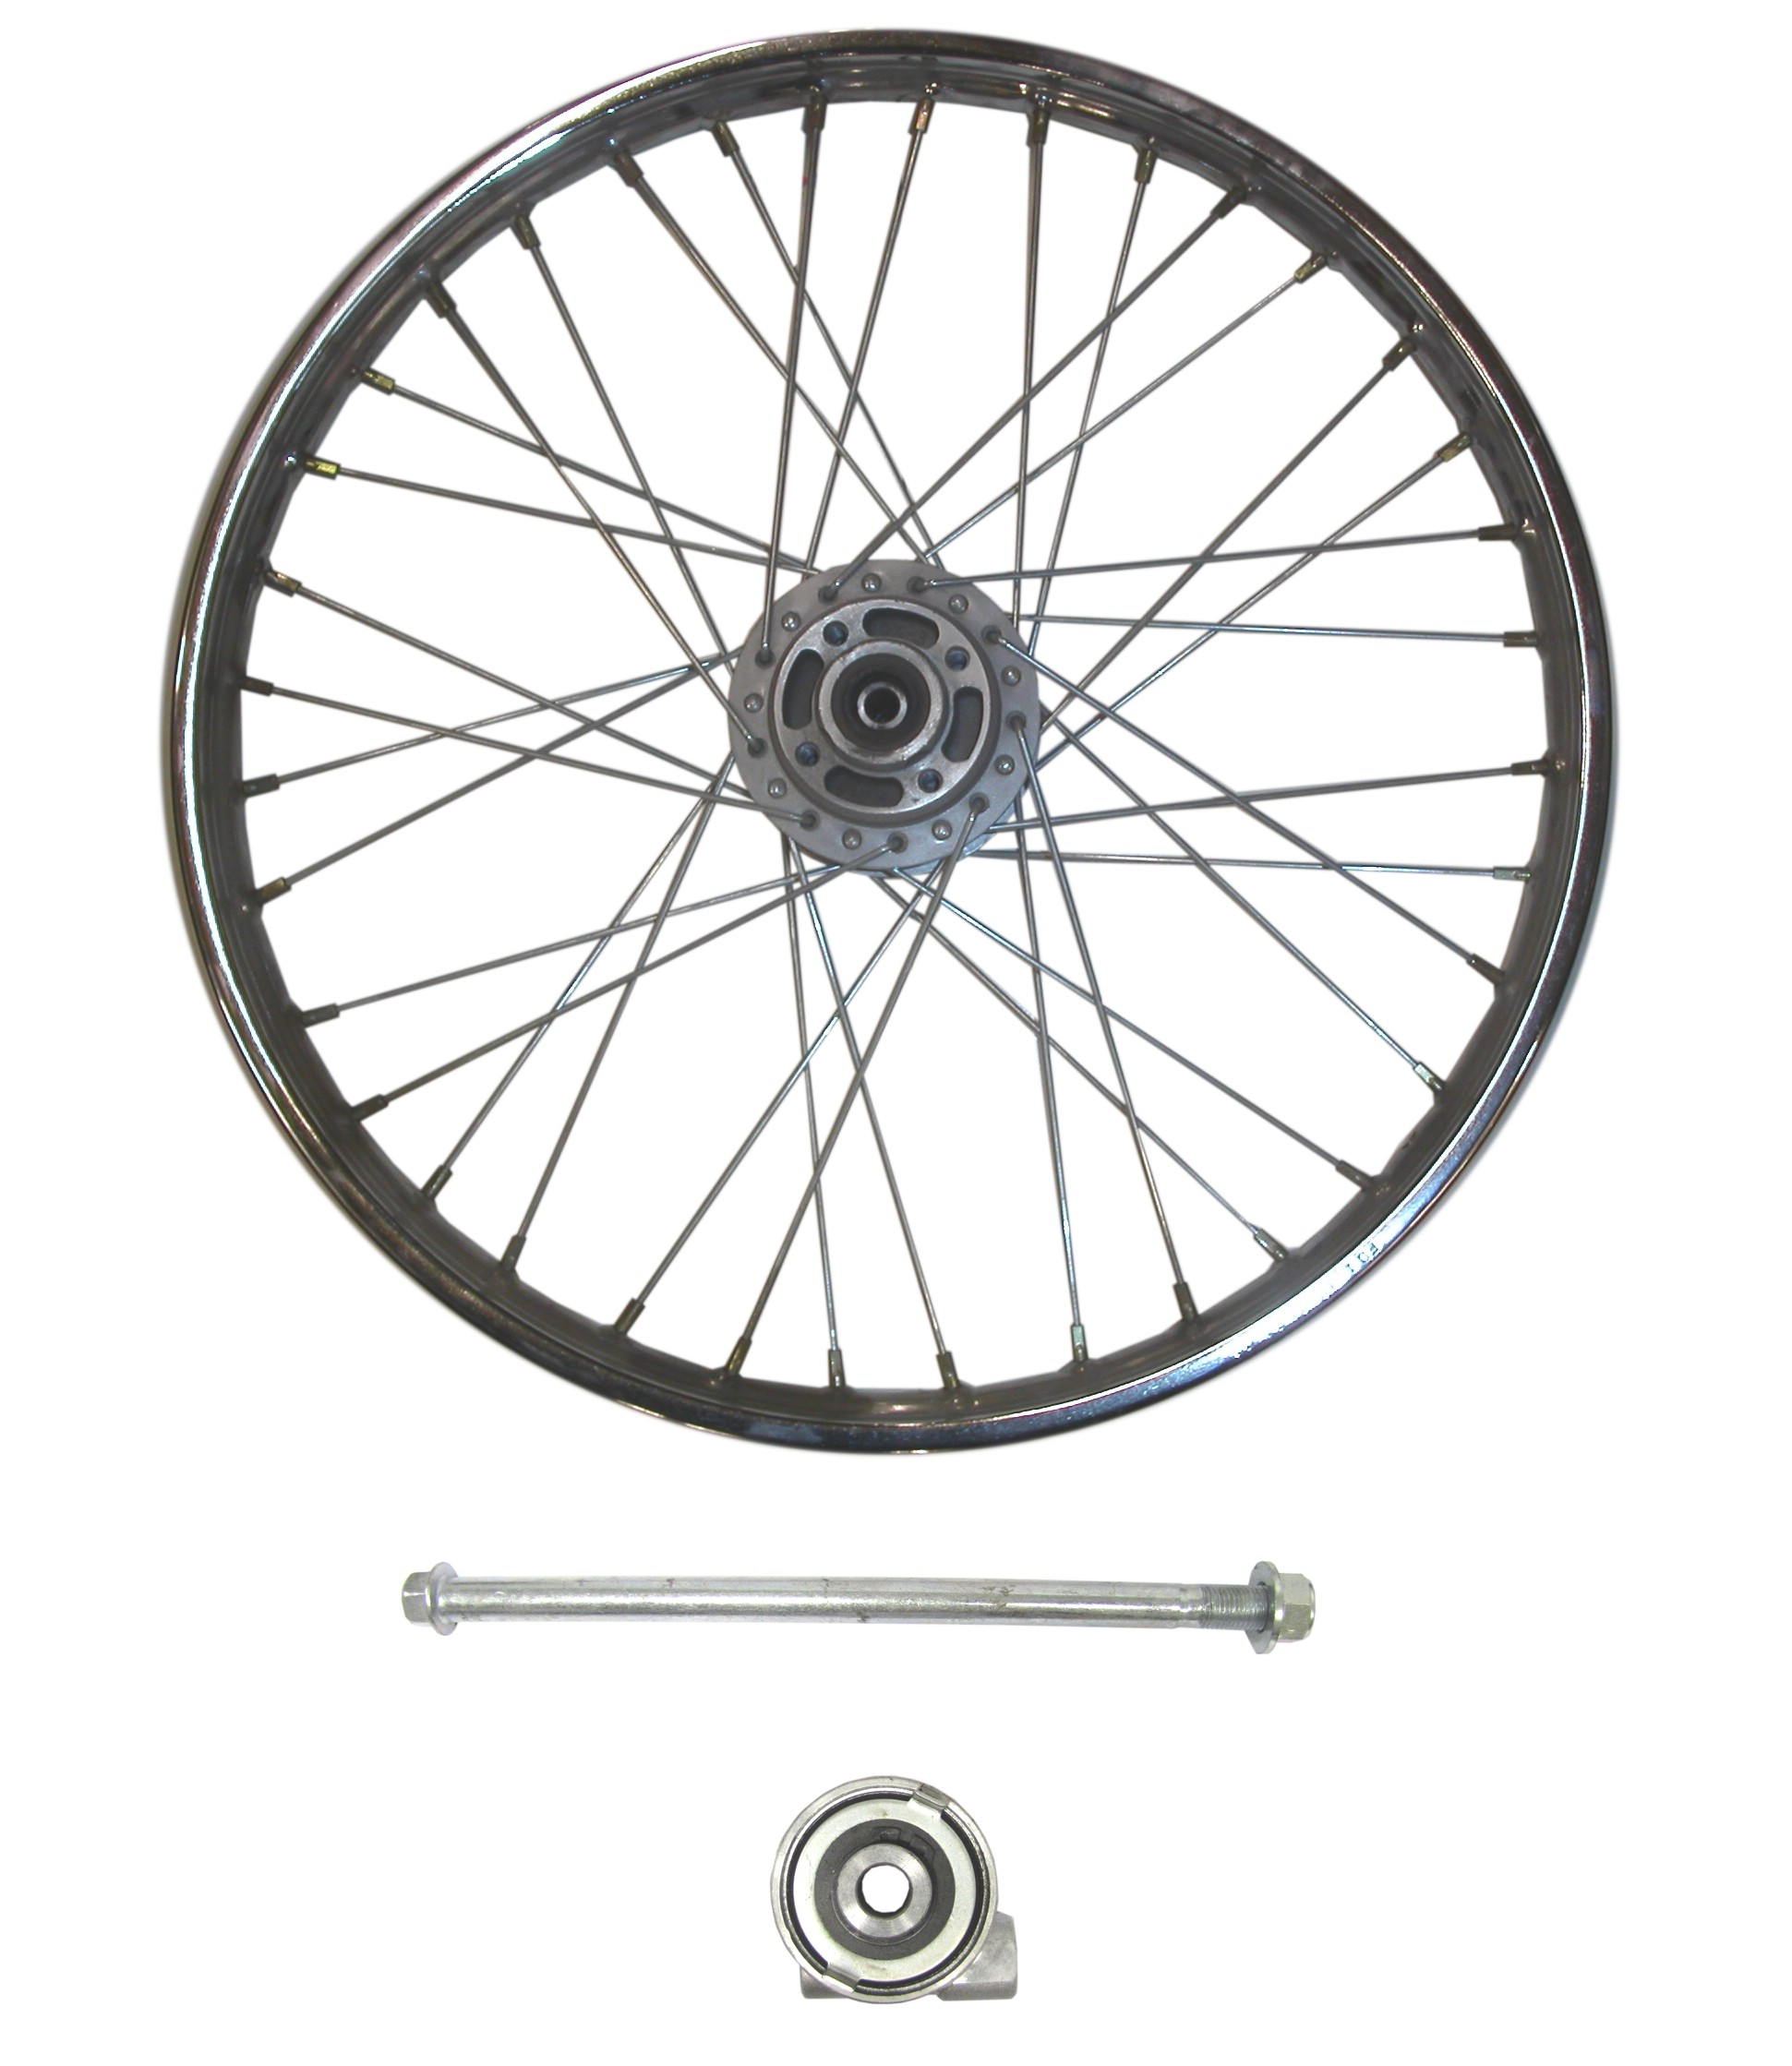 Front Wheel Cg125 Style Drum With Brake Plate Rim 1 40 X 18 Each